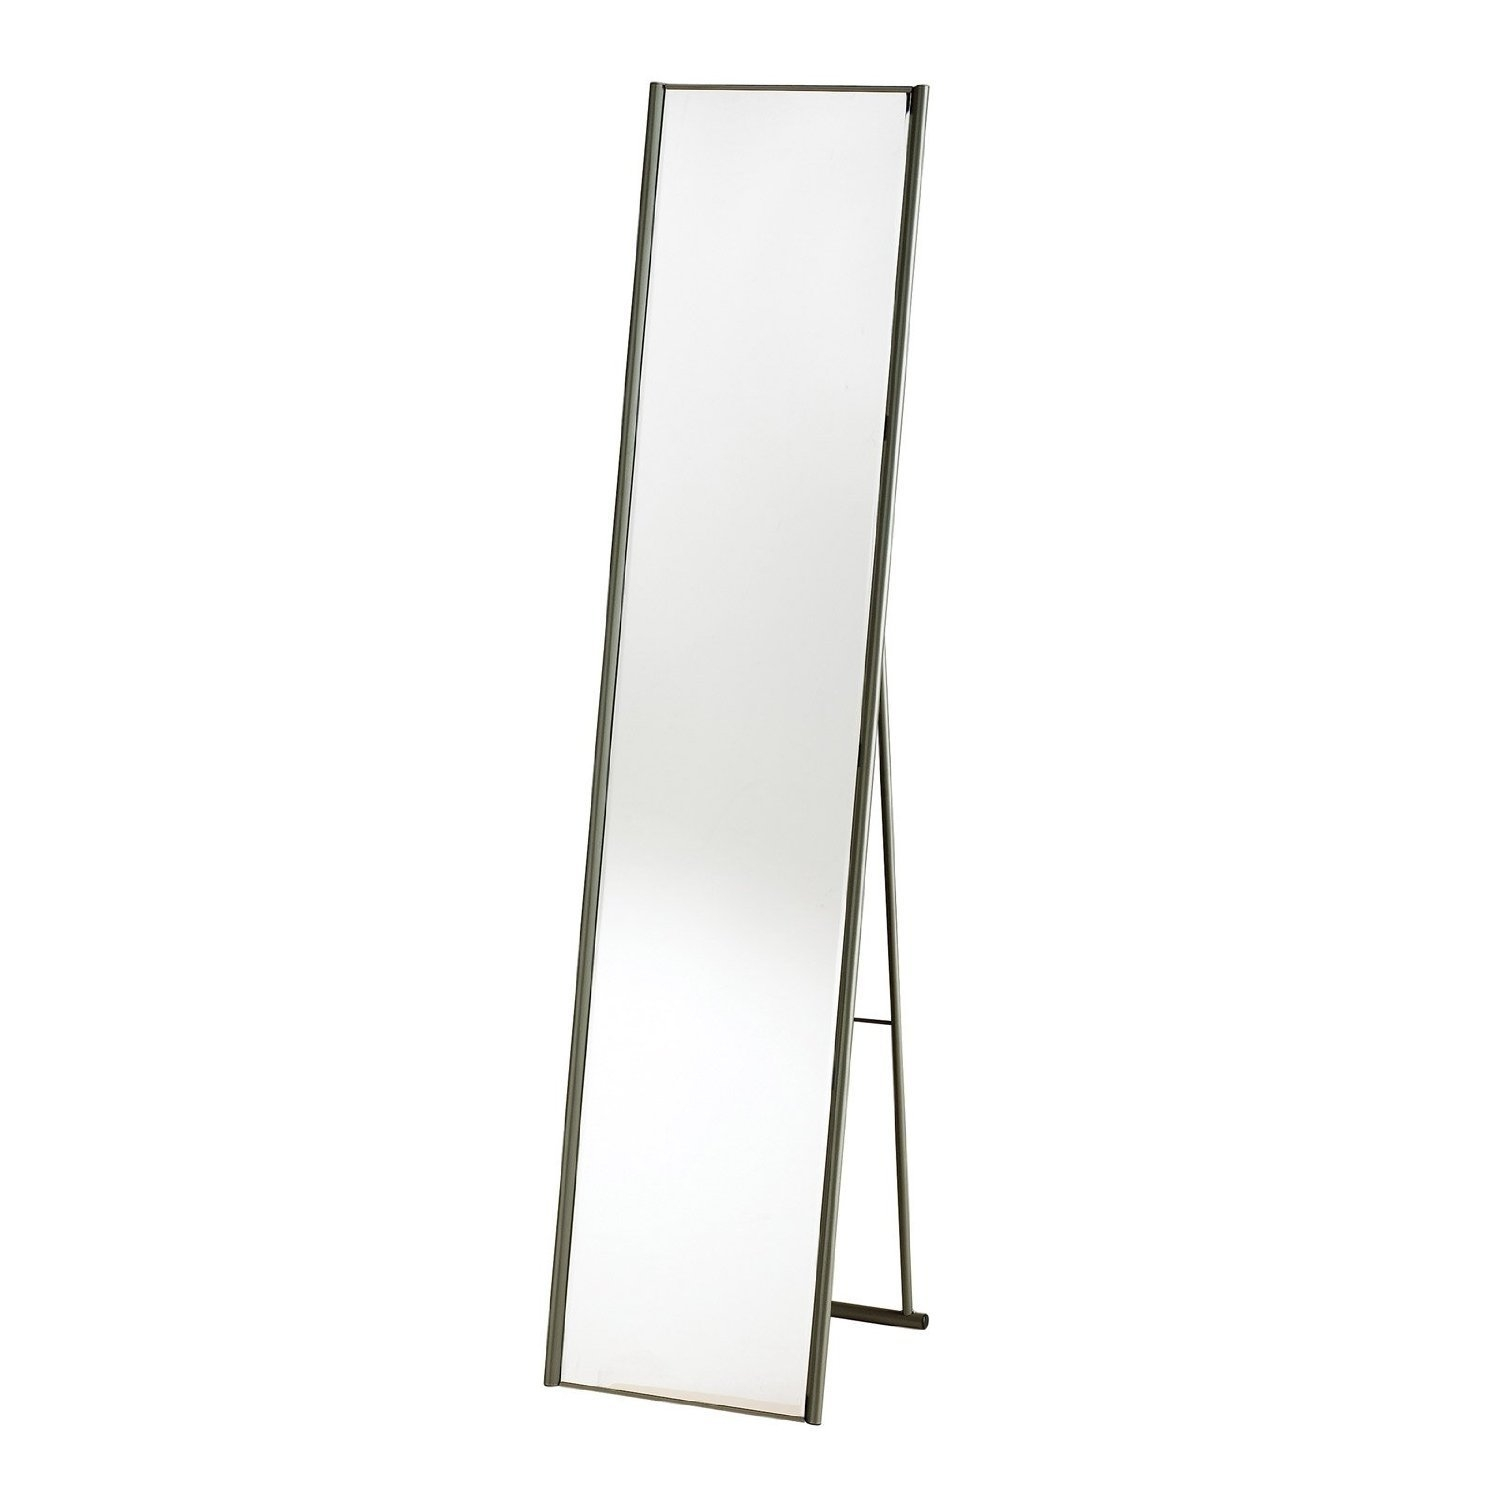 Shop Amazon Floor Mirrors With Contemporary Floor Standing Mirrors (Image 14 of 15)